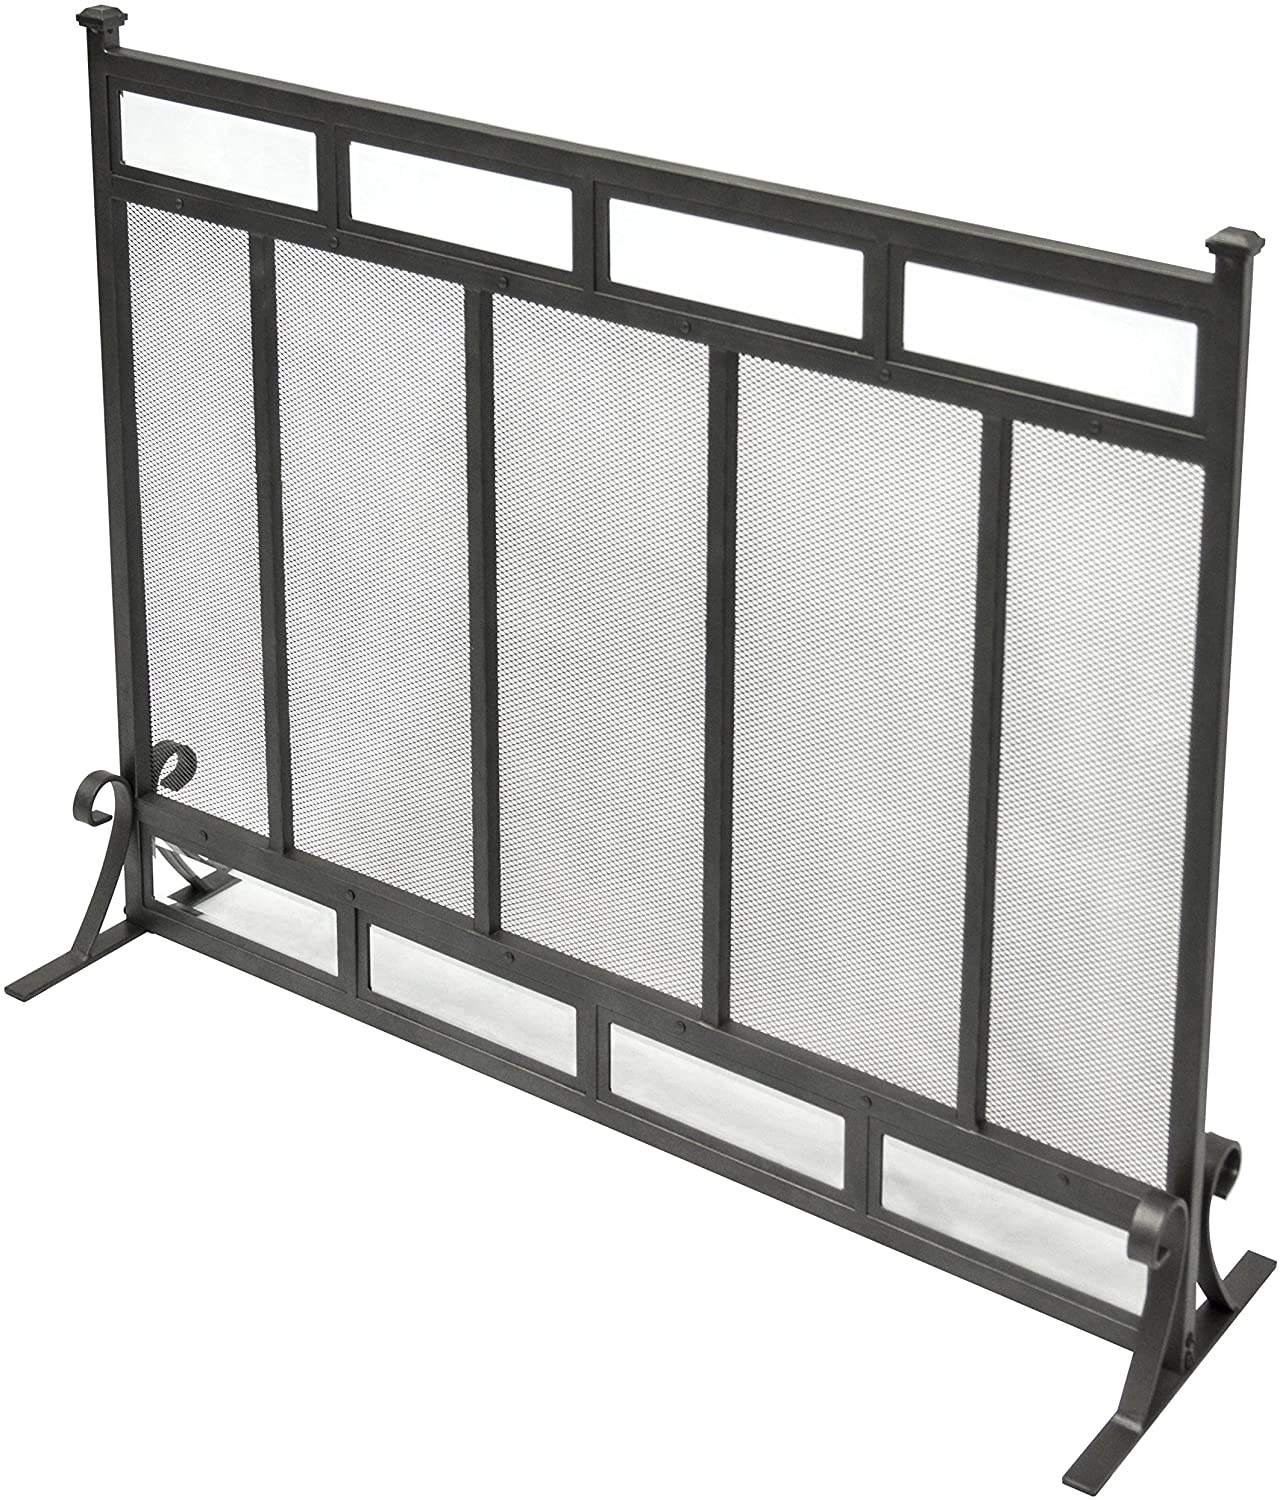 Indoor mesh fireplace screen Vintage fireplace safely frame